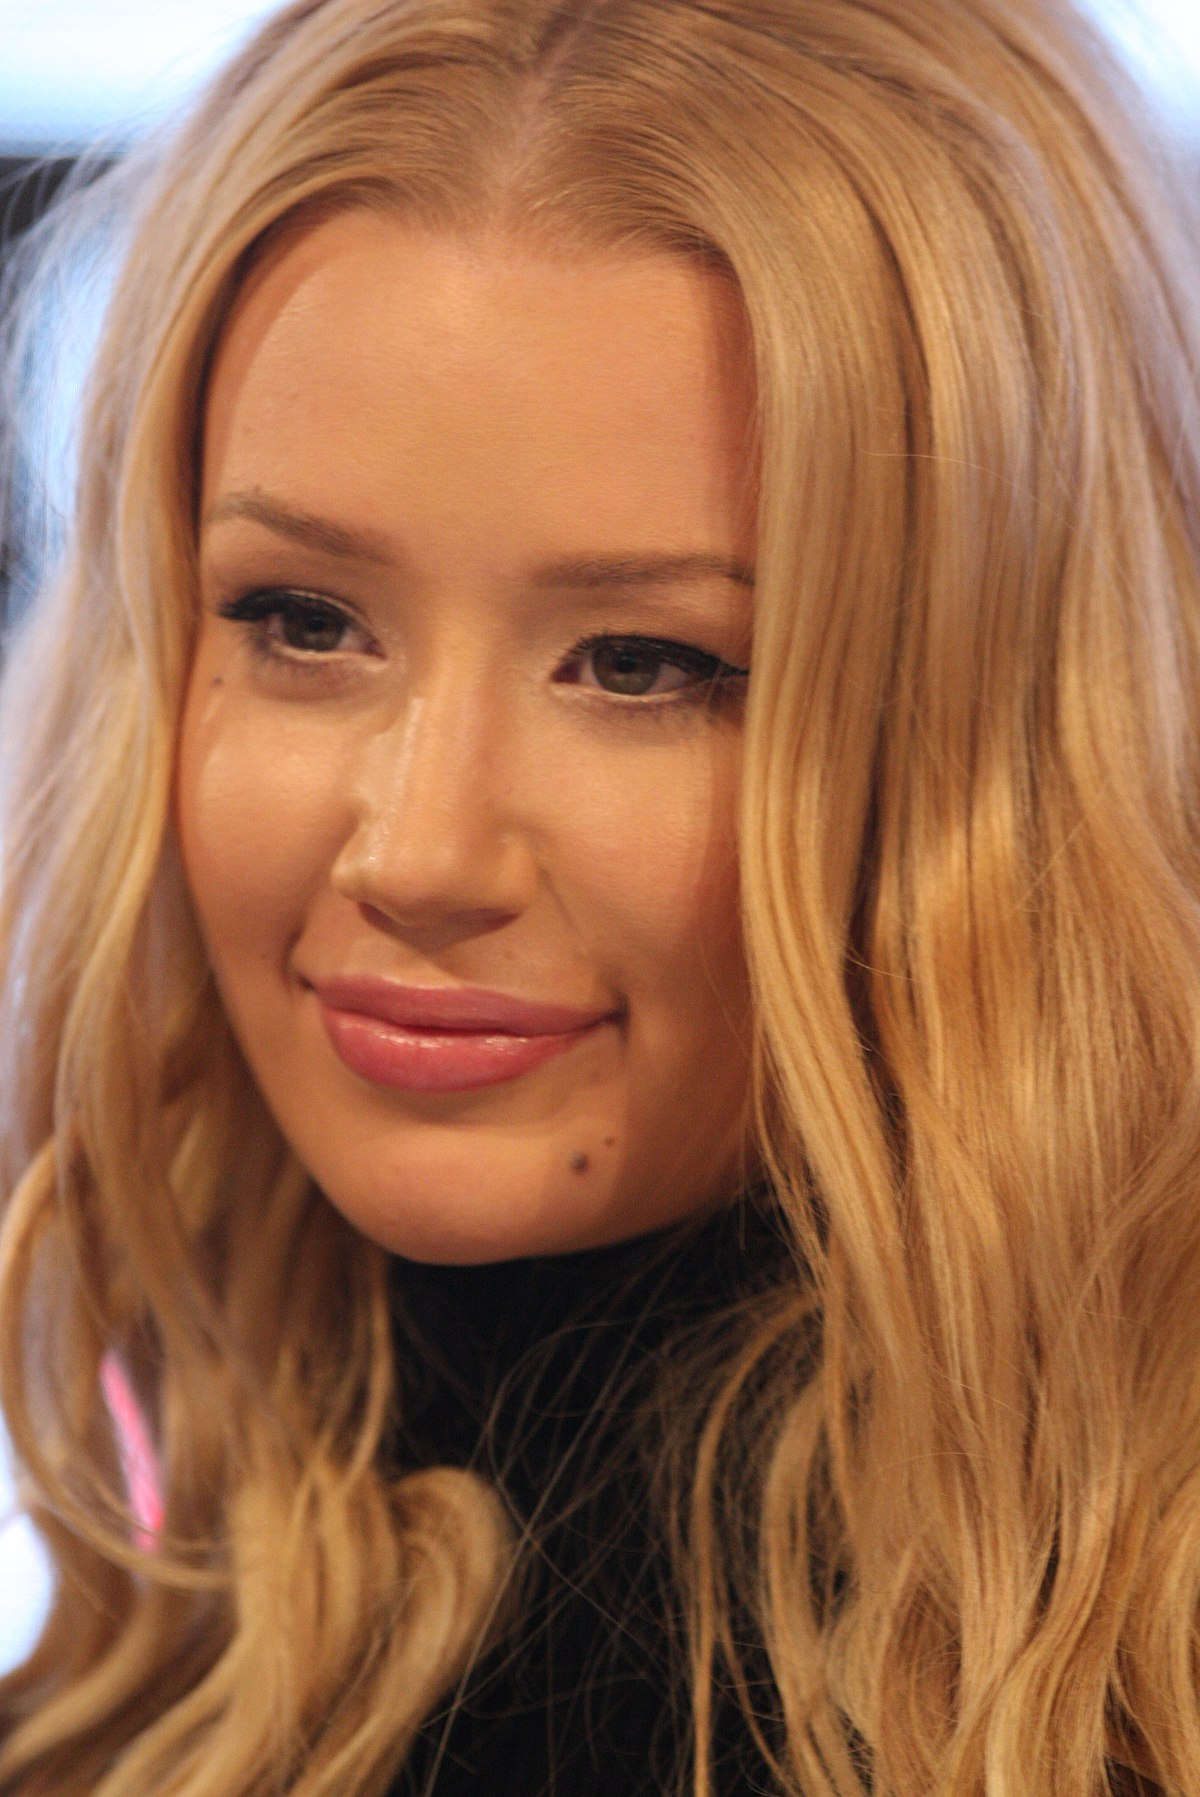 e90feb14d35 Iggy Azalea - Wikipedia